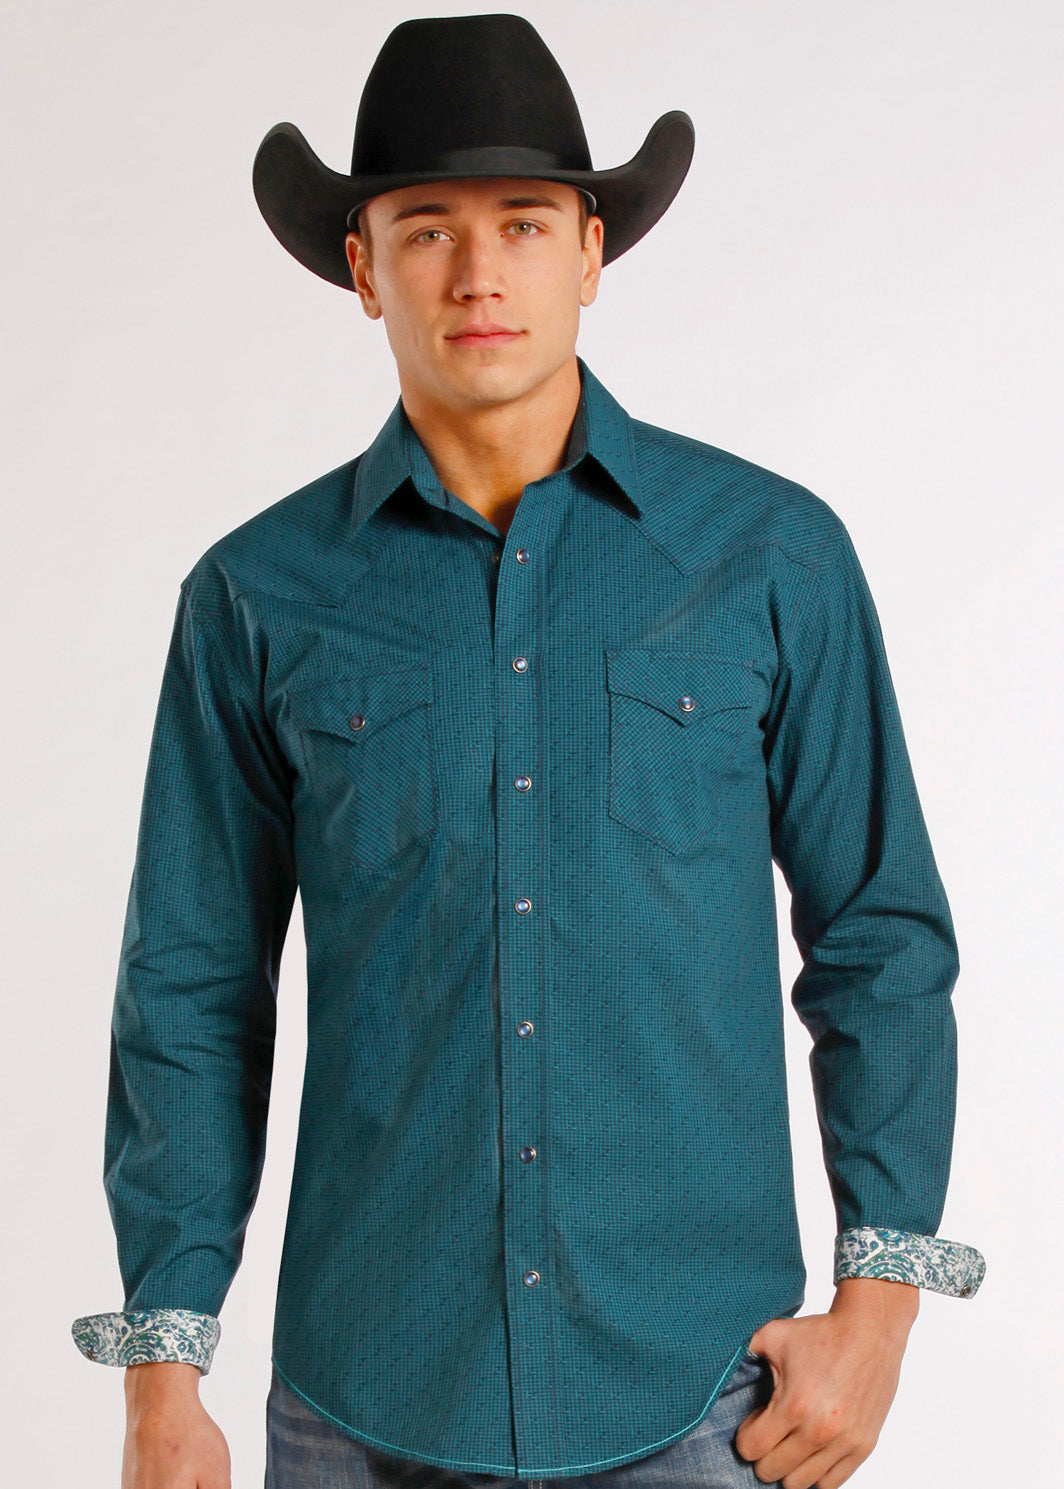 Men's Rough Stock Snap Front Shirt #R0S8028-C